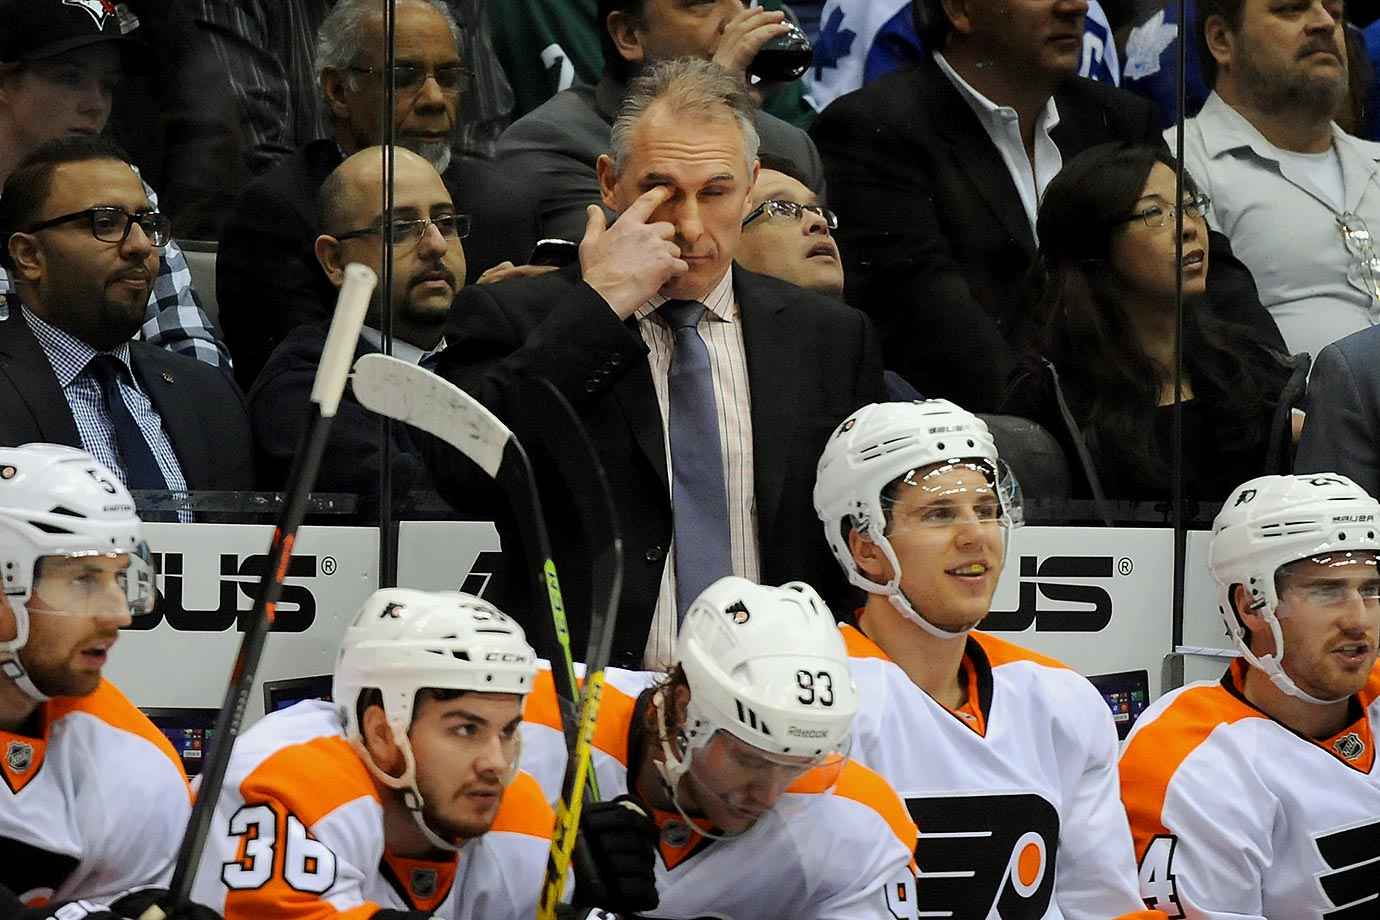 One surprising scrappy playoff run, one disappointing campaign at the bottom of the Metropolitan Division standings. That's all it took to bring Craig Berube's time coaching the Philadelphia Flyers to a close.